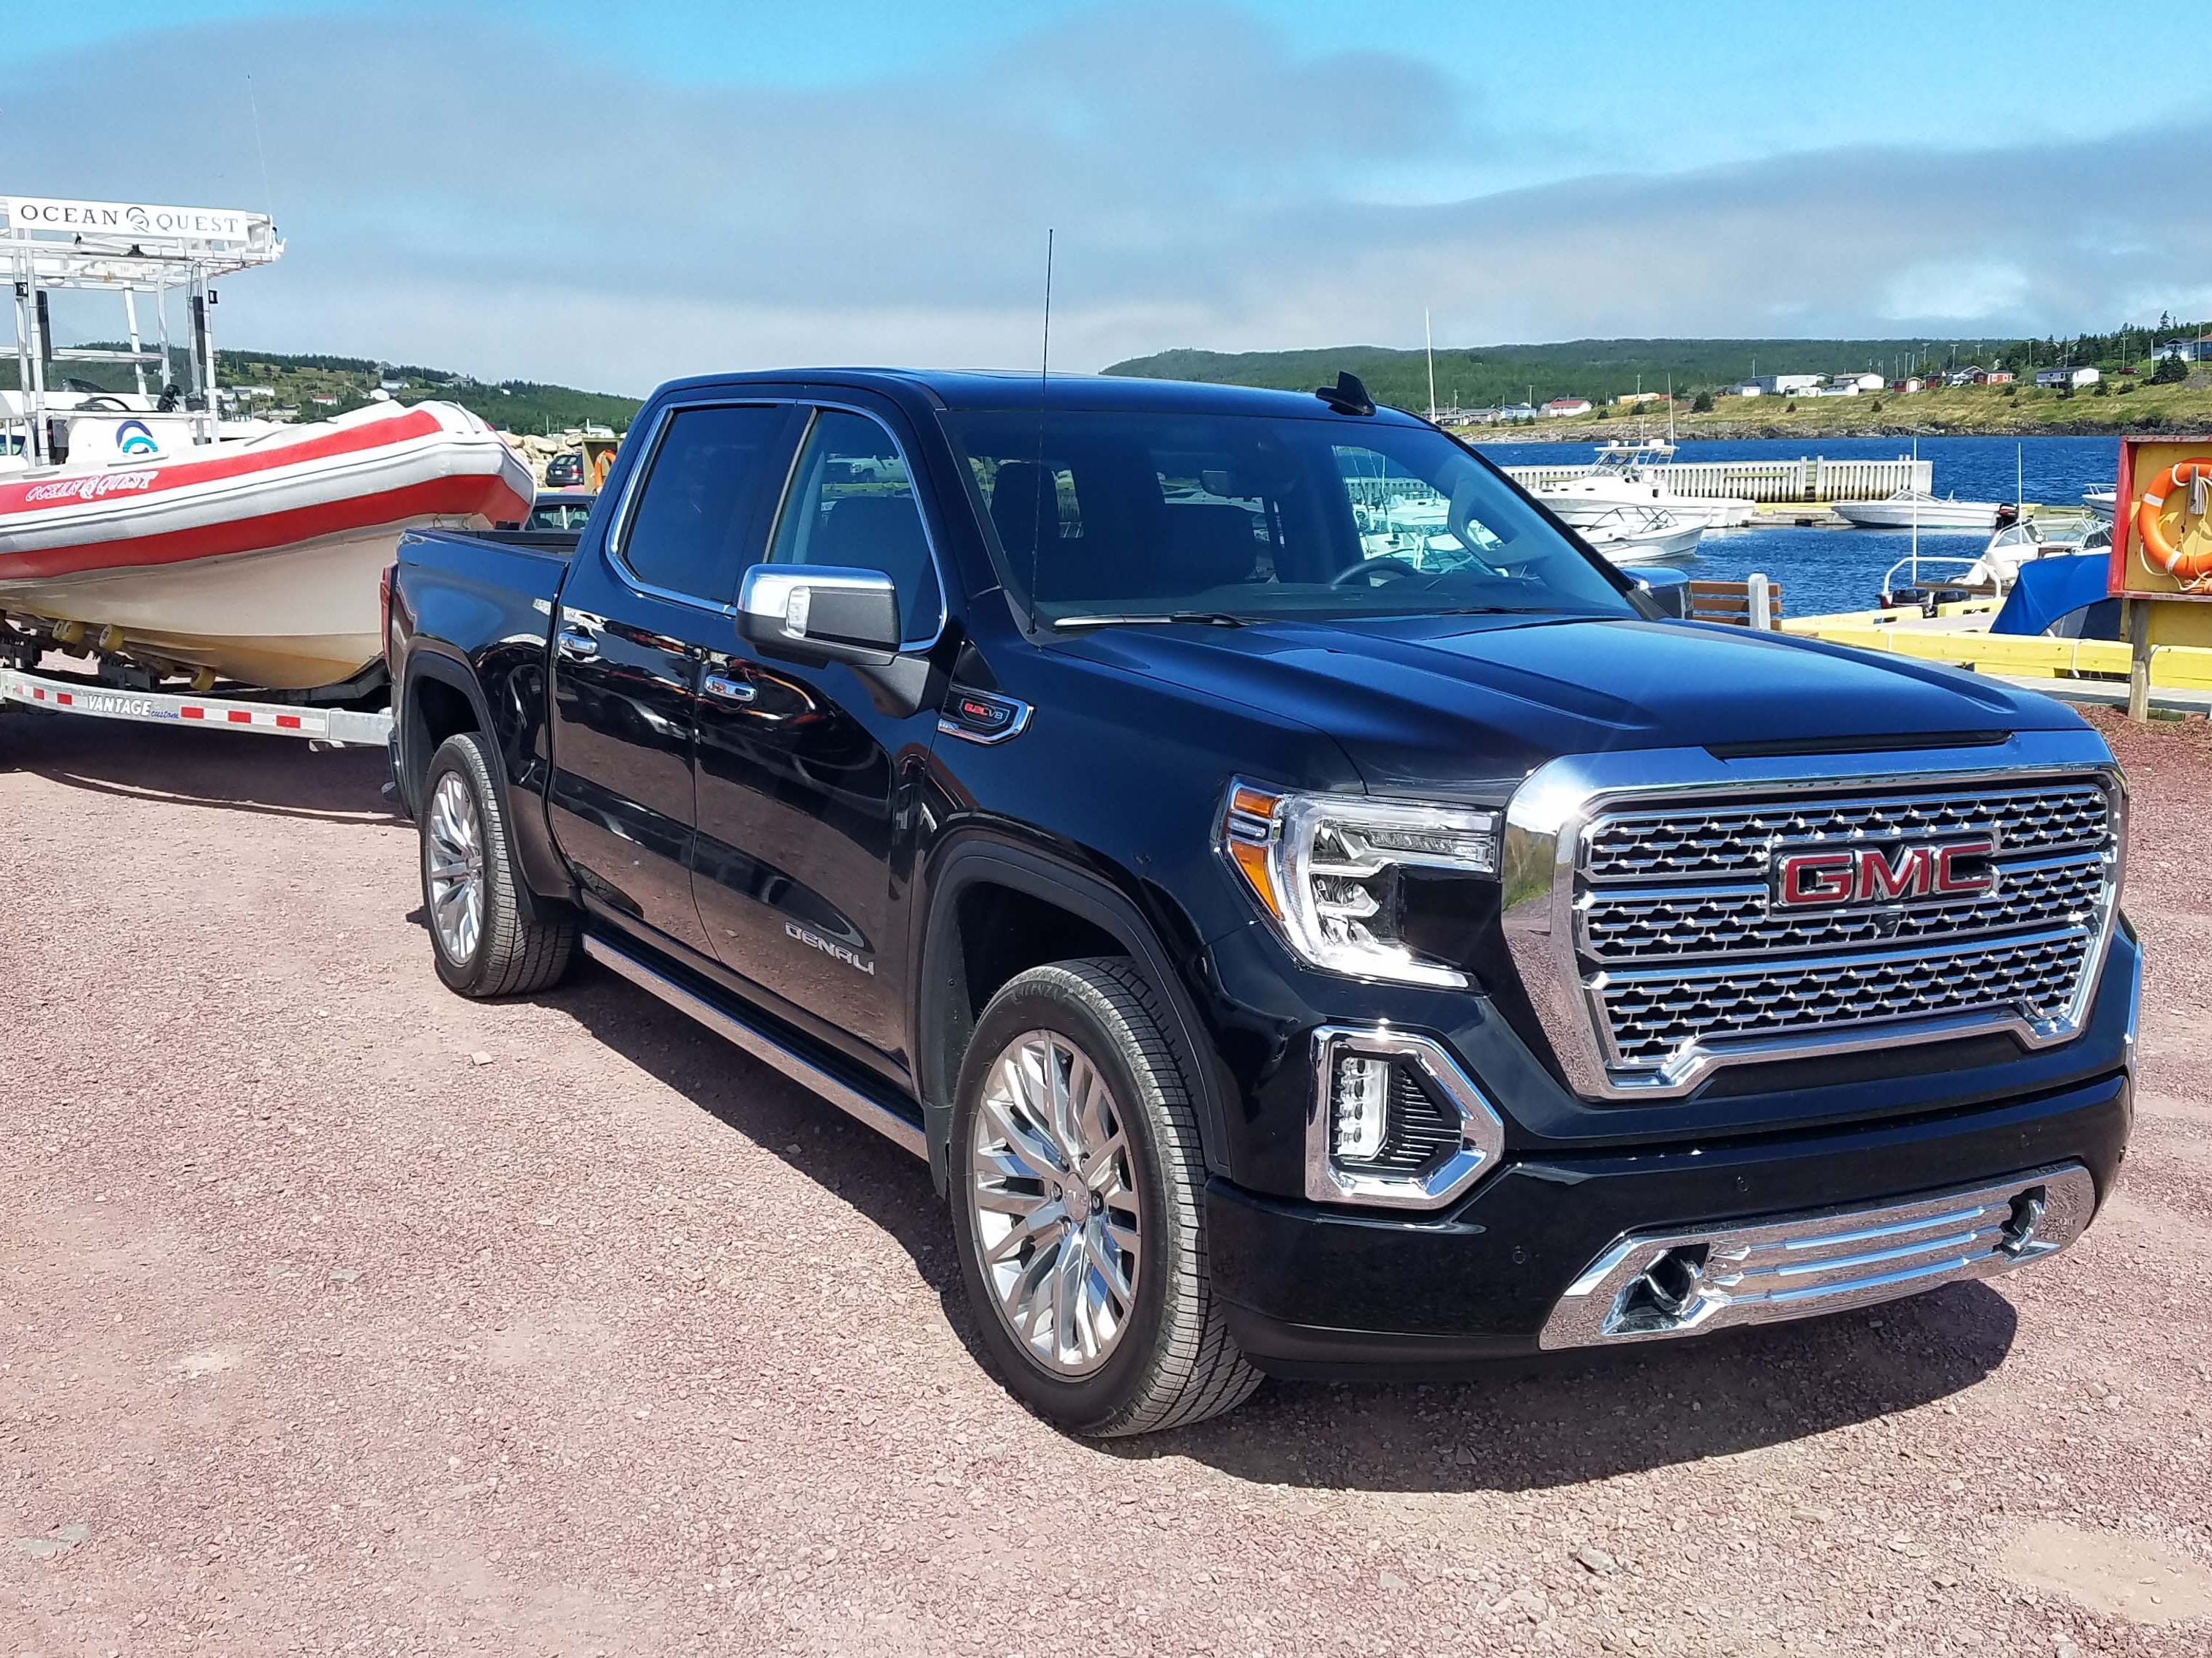 The 2019 GMC Sierra Denali is equipped for towing up to 12,100 pounds, with multiple cameras and sensors to guide the trailer, and an in-screen app to check trailer tire pressures.